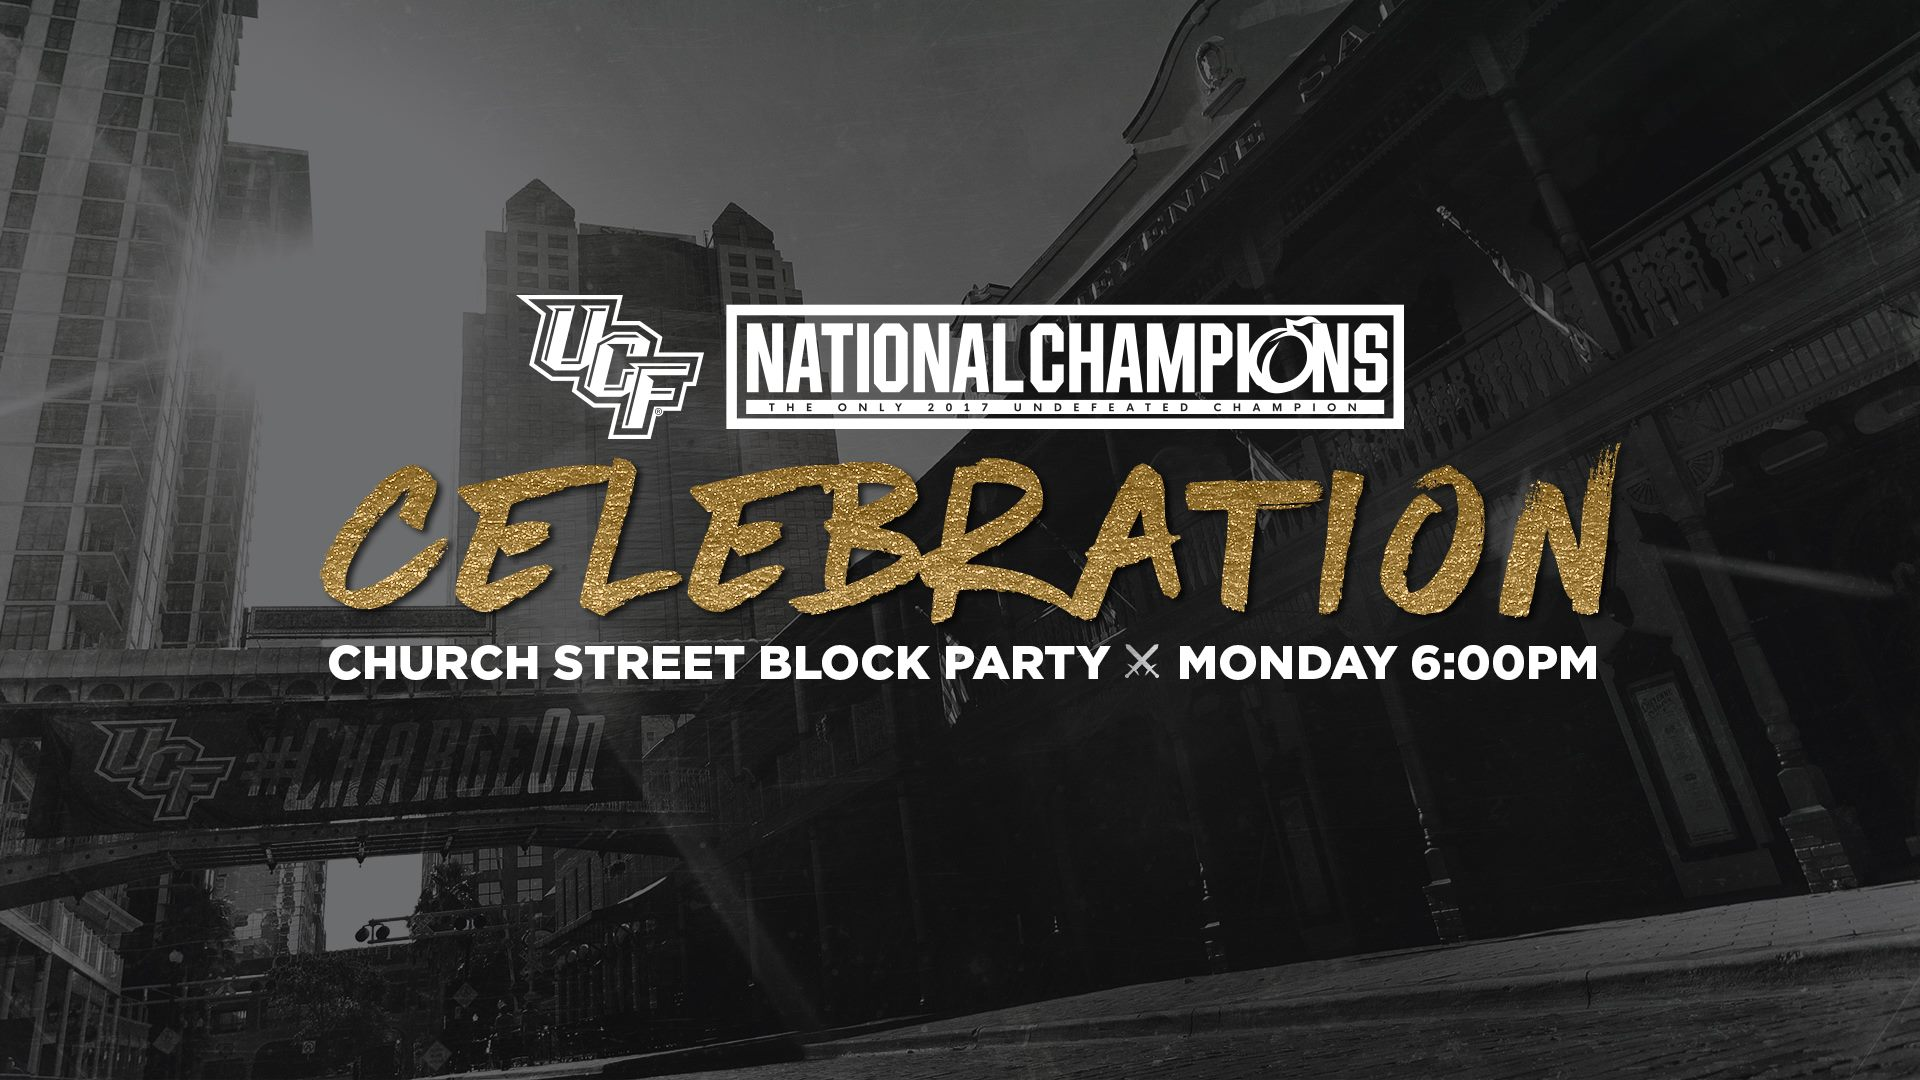 UCF to celebrate flawless season with national title banner, parade